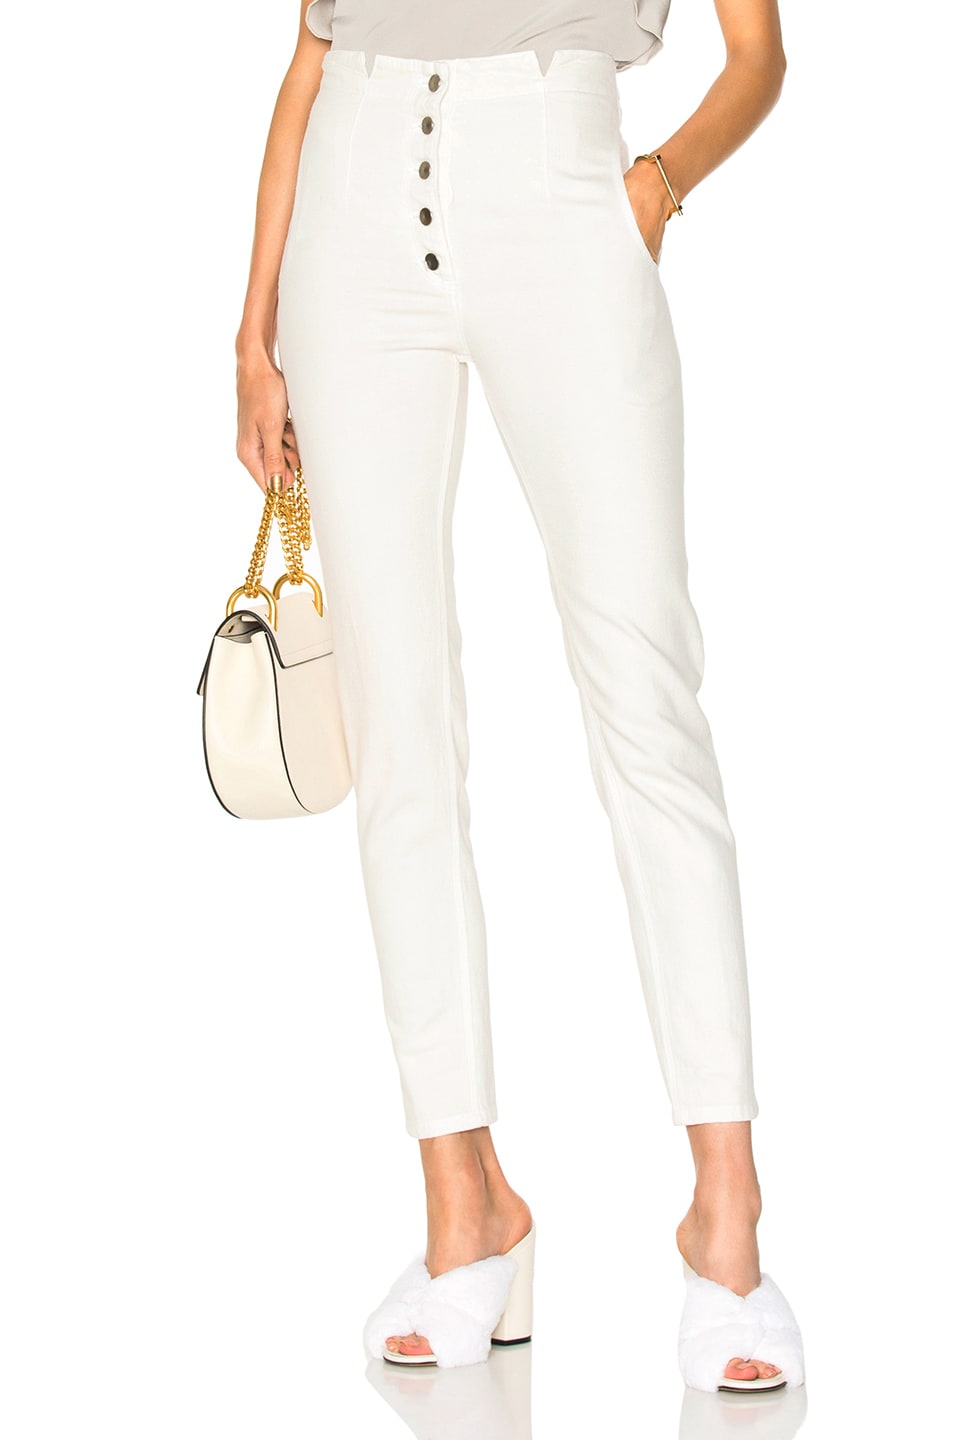 RACHEL COMEY DOCK PANT IN WHITE